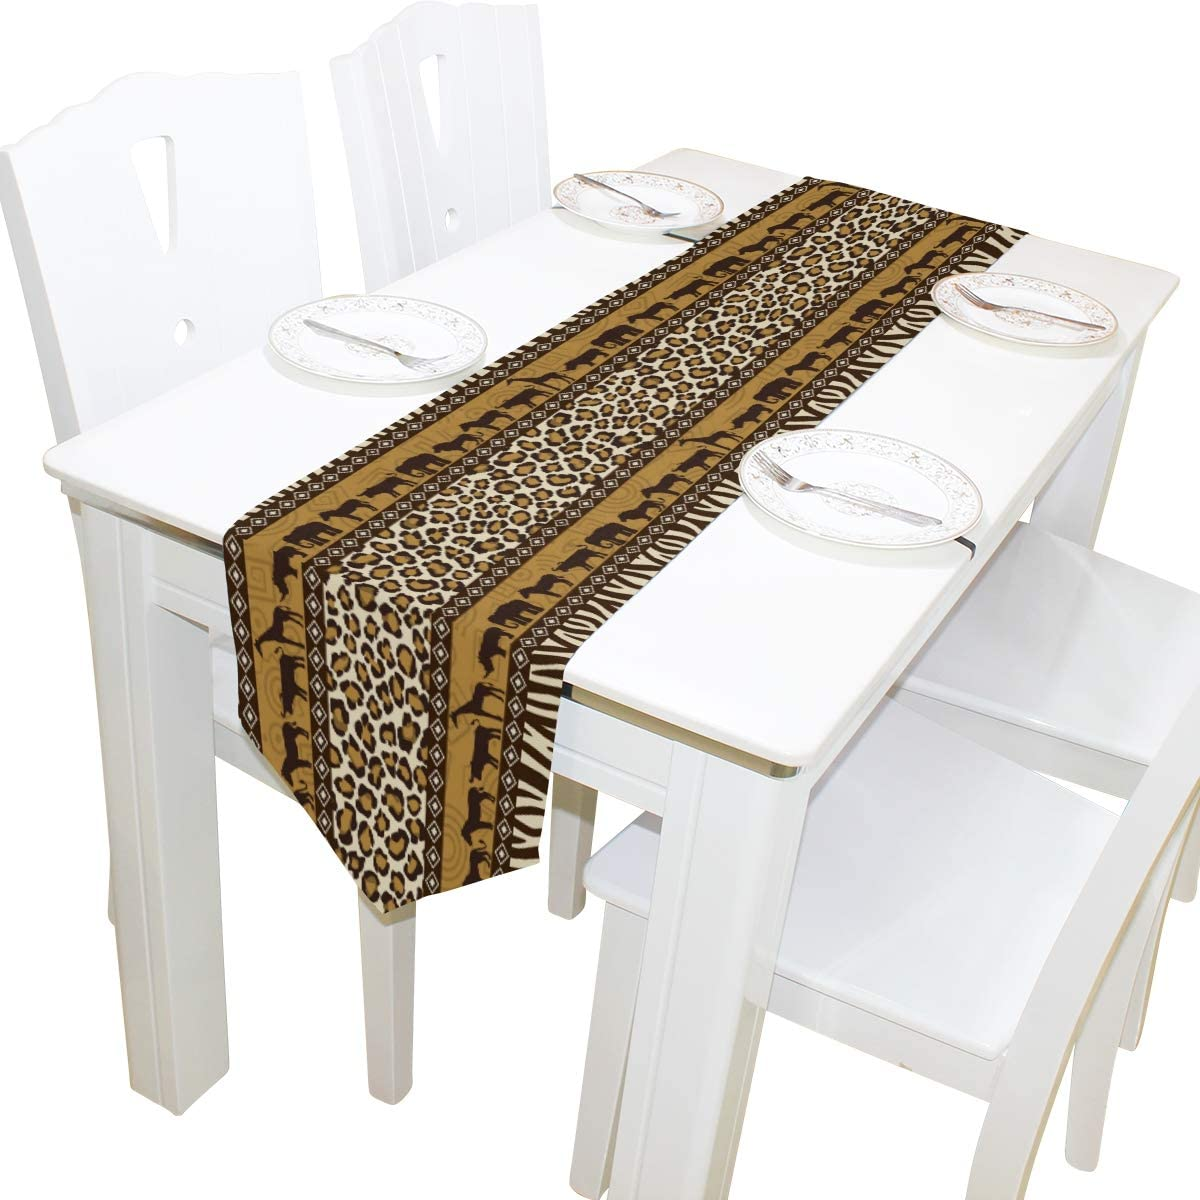 WOOR Double-Sided African Decor Giraffe Elephant Animal Leopard Print Table Runner 13 x 70 Inches Long,Table Cloth Runner for Wedding Party Holiday Kitchen Dining Home Everyday Decor